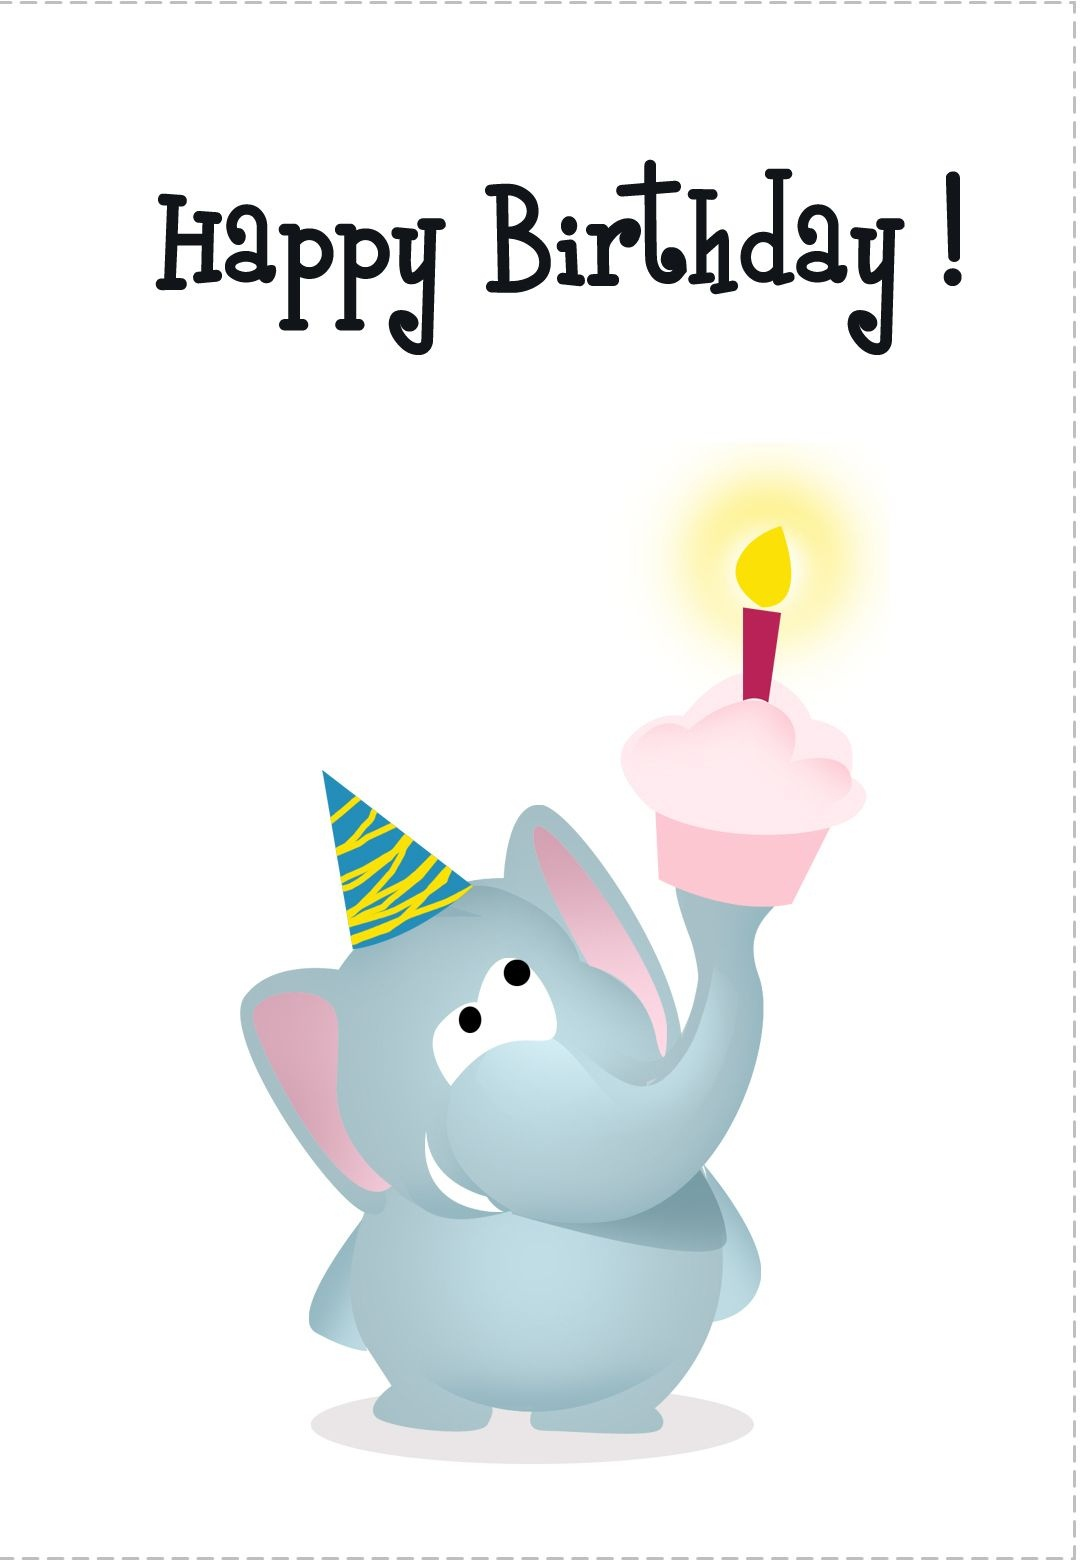 Free Printable Greeting Cards Of All Kinds. With Matching Printable - Free Printable Birthday Cards For Kids